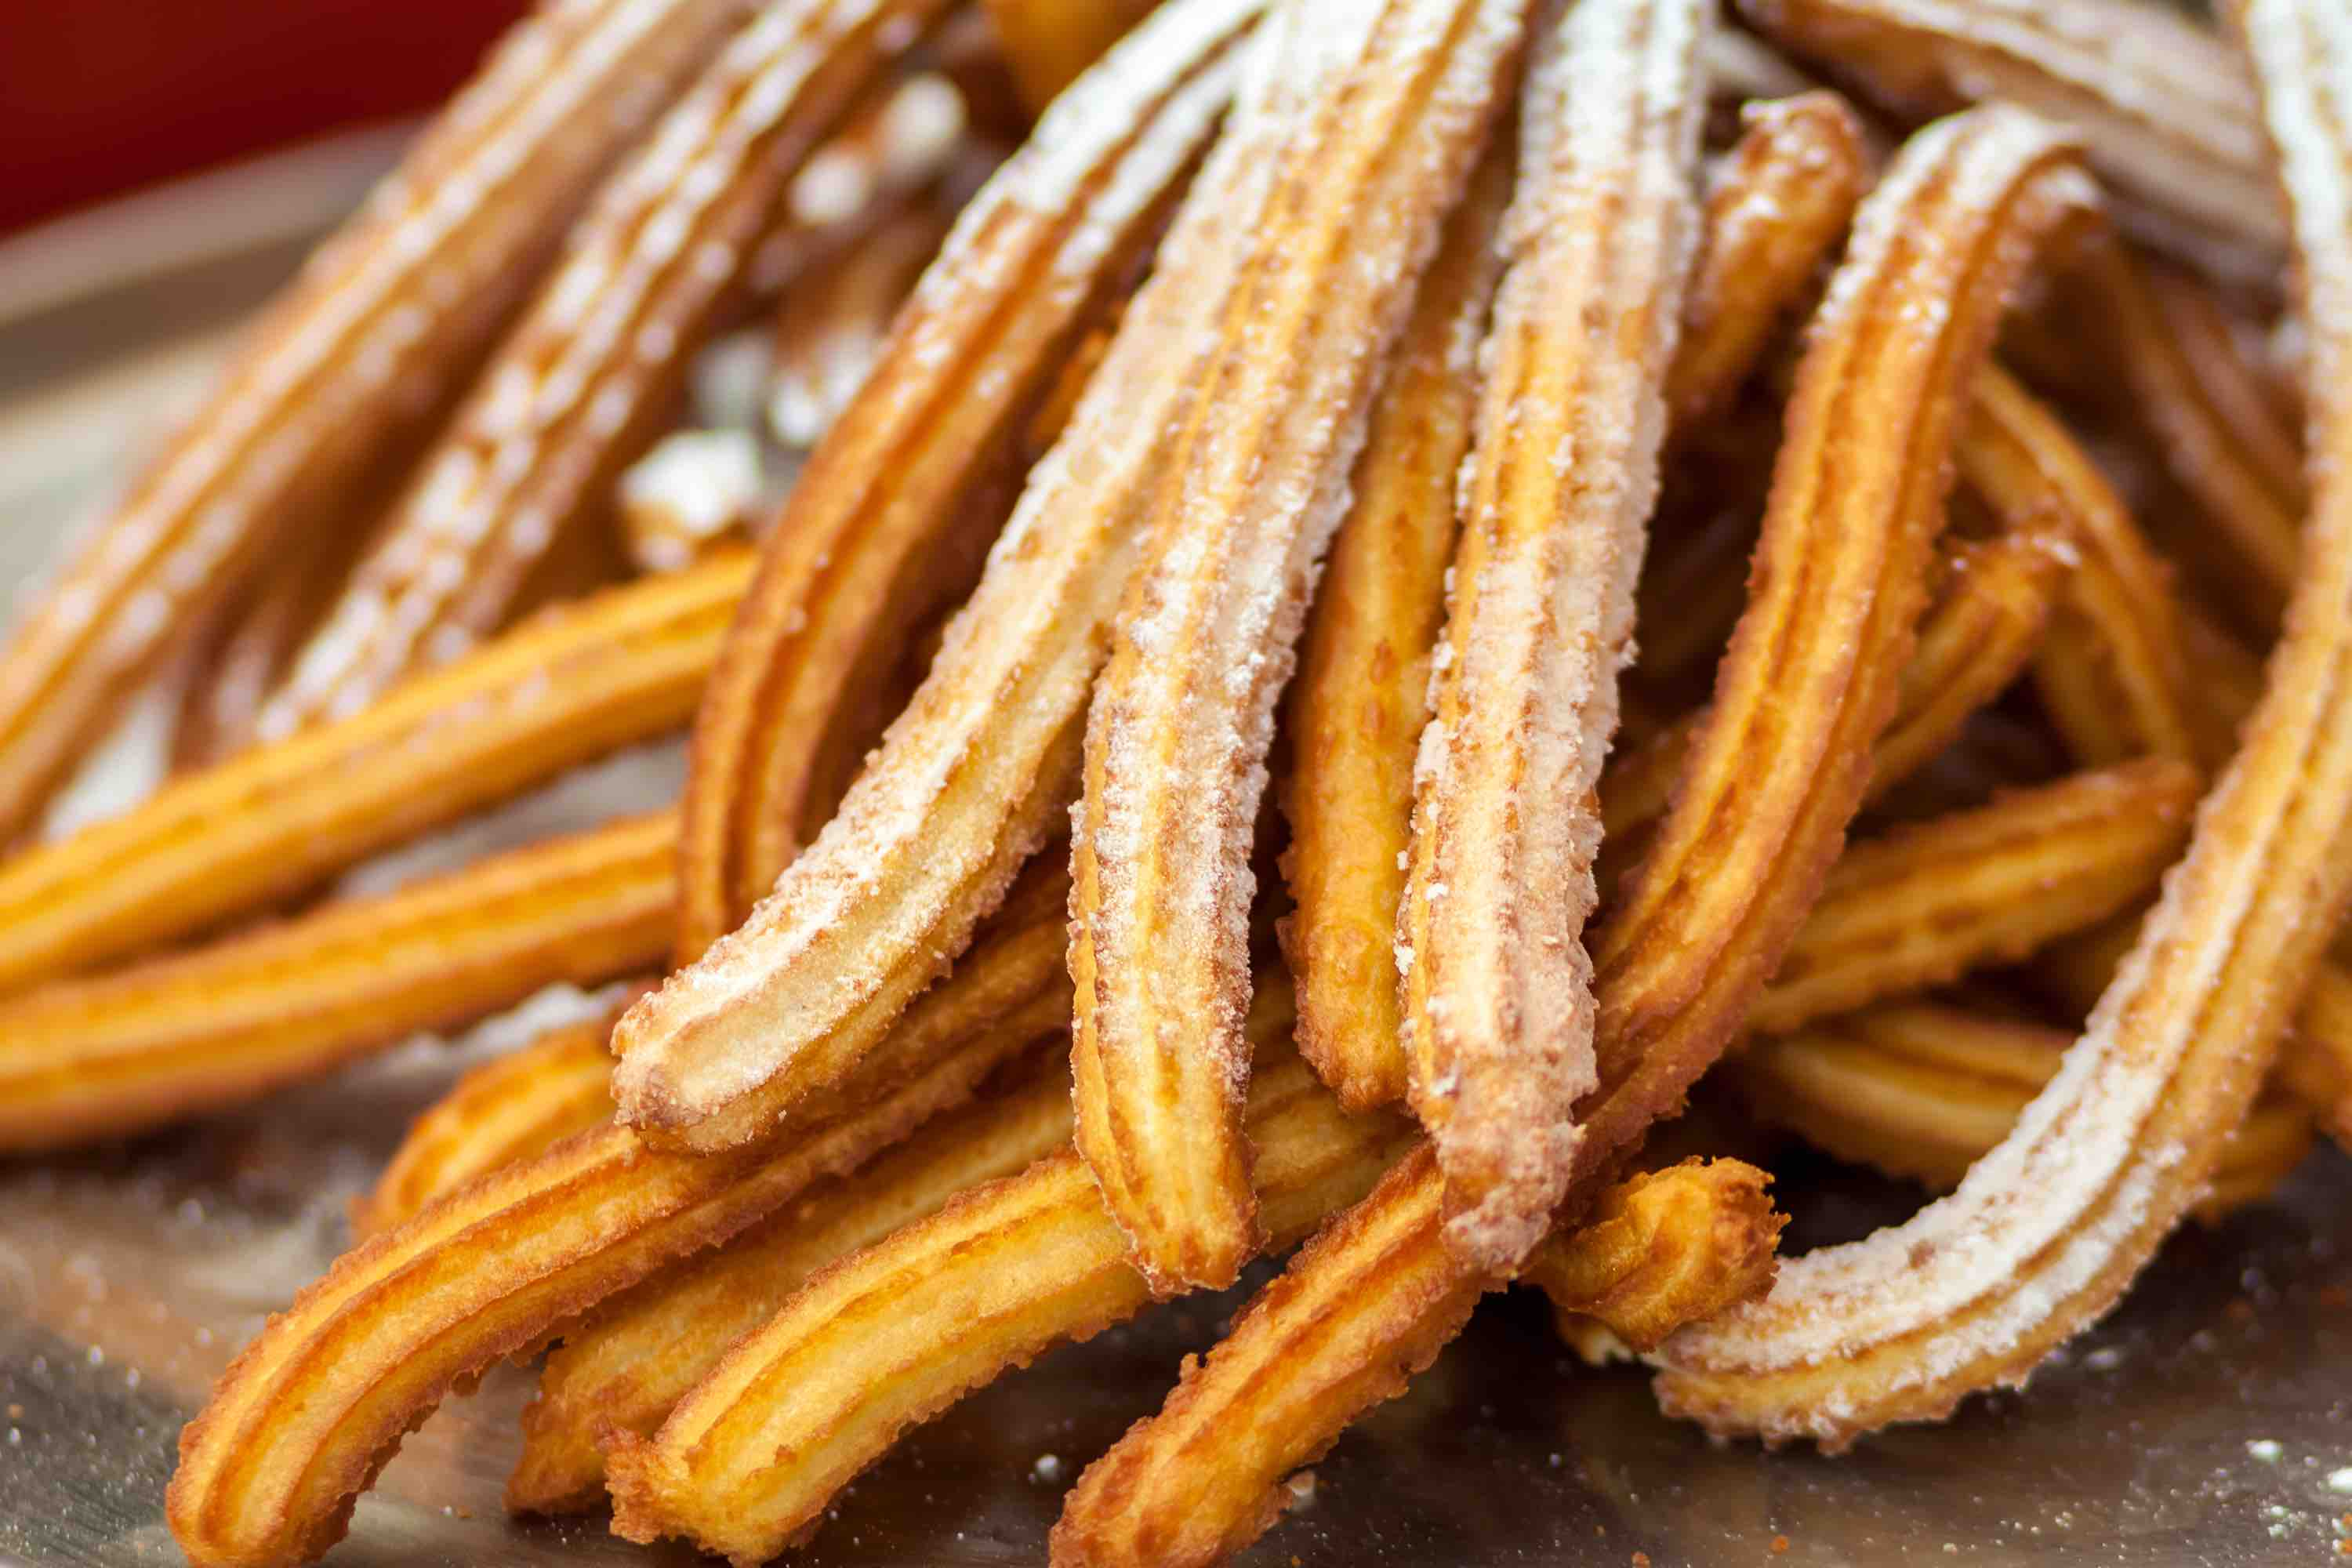 Two 10-Year-Olds Will Put Up a Hot Chocolate & Churro Stand to Raise Money for Immigrant Families